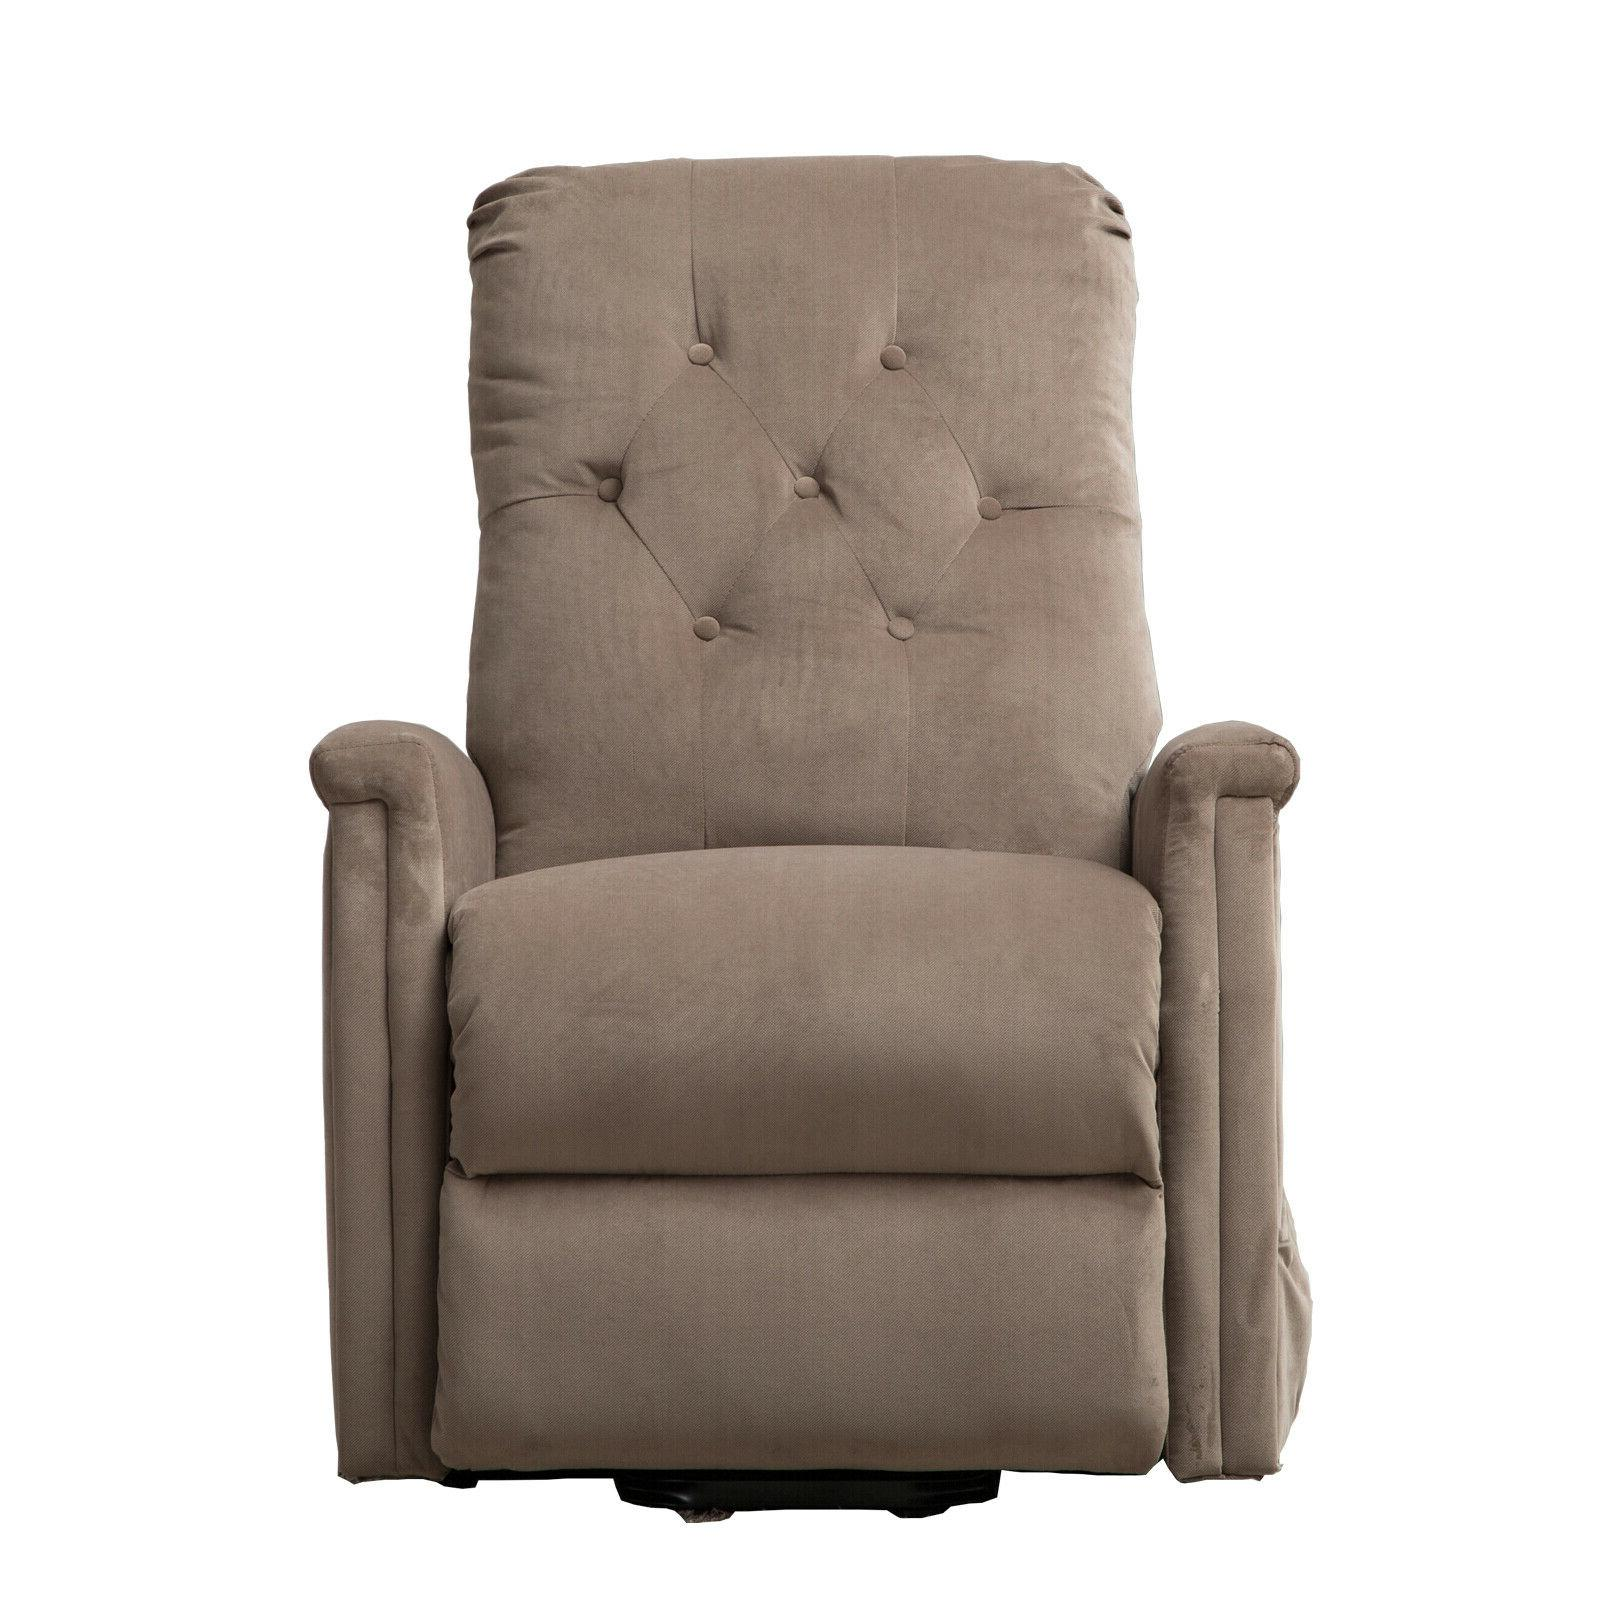 Electric Lift Recliner Chair Microfiber Lounge